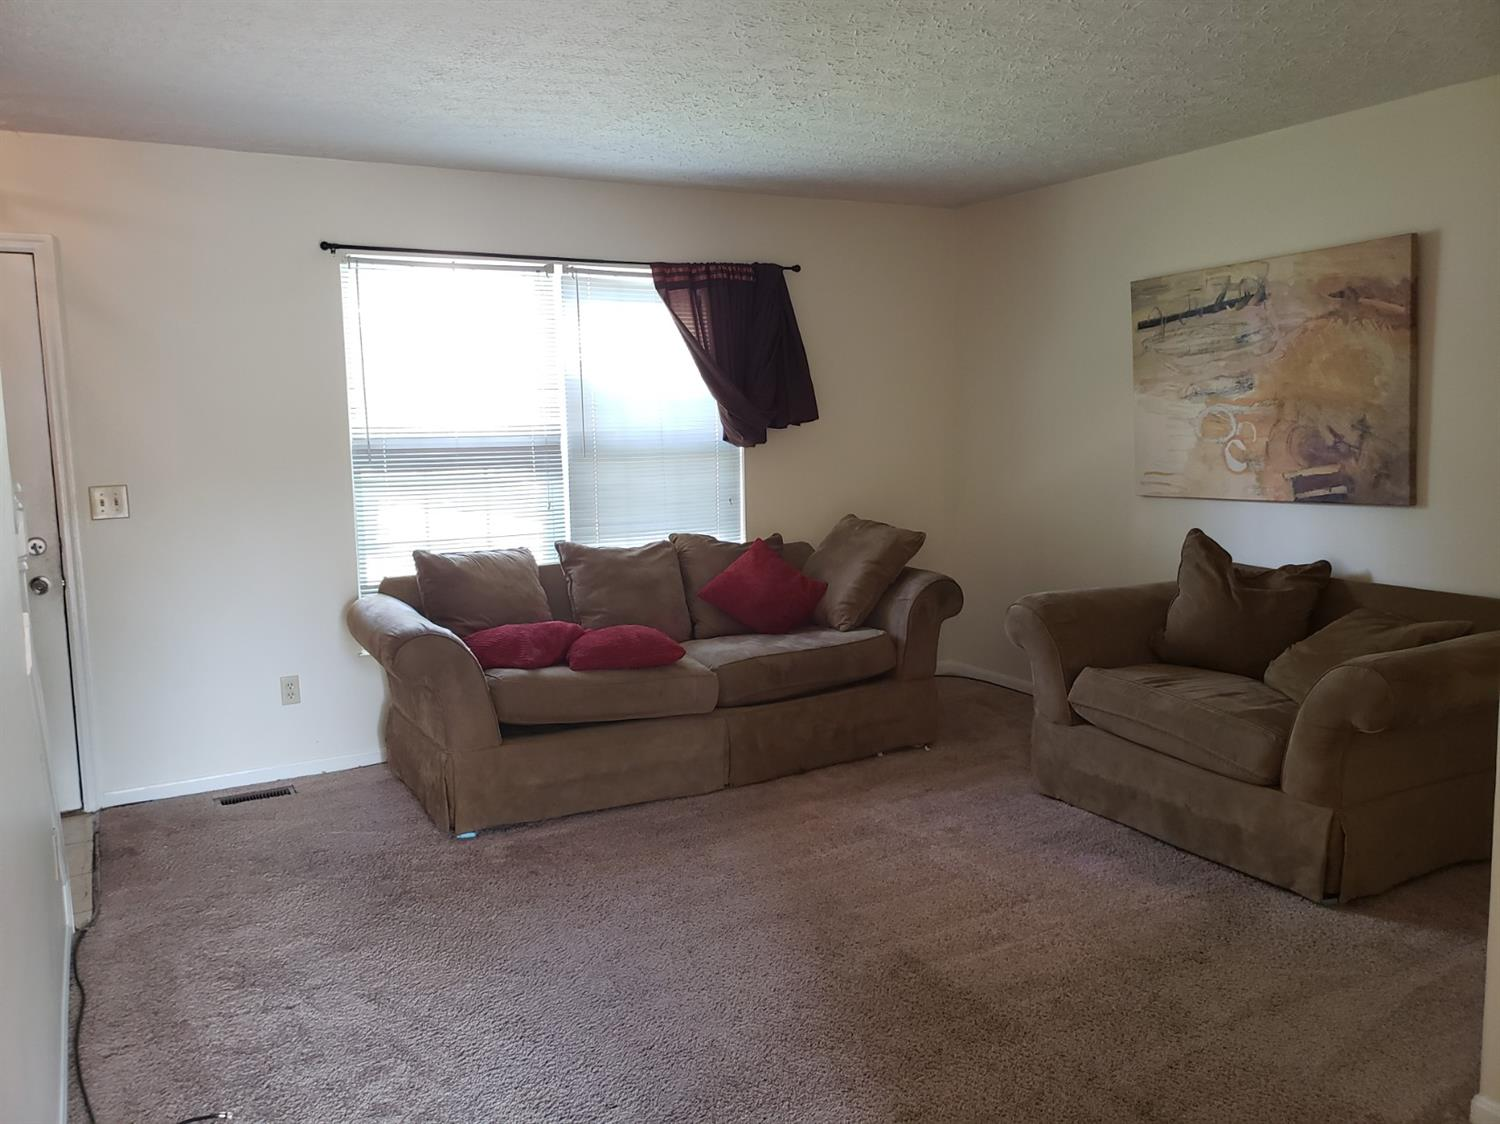 Photo 3 for 1804 1806 Tuxworth Ave Covedale, OH 45238